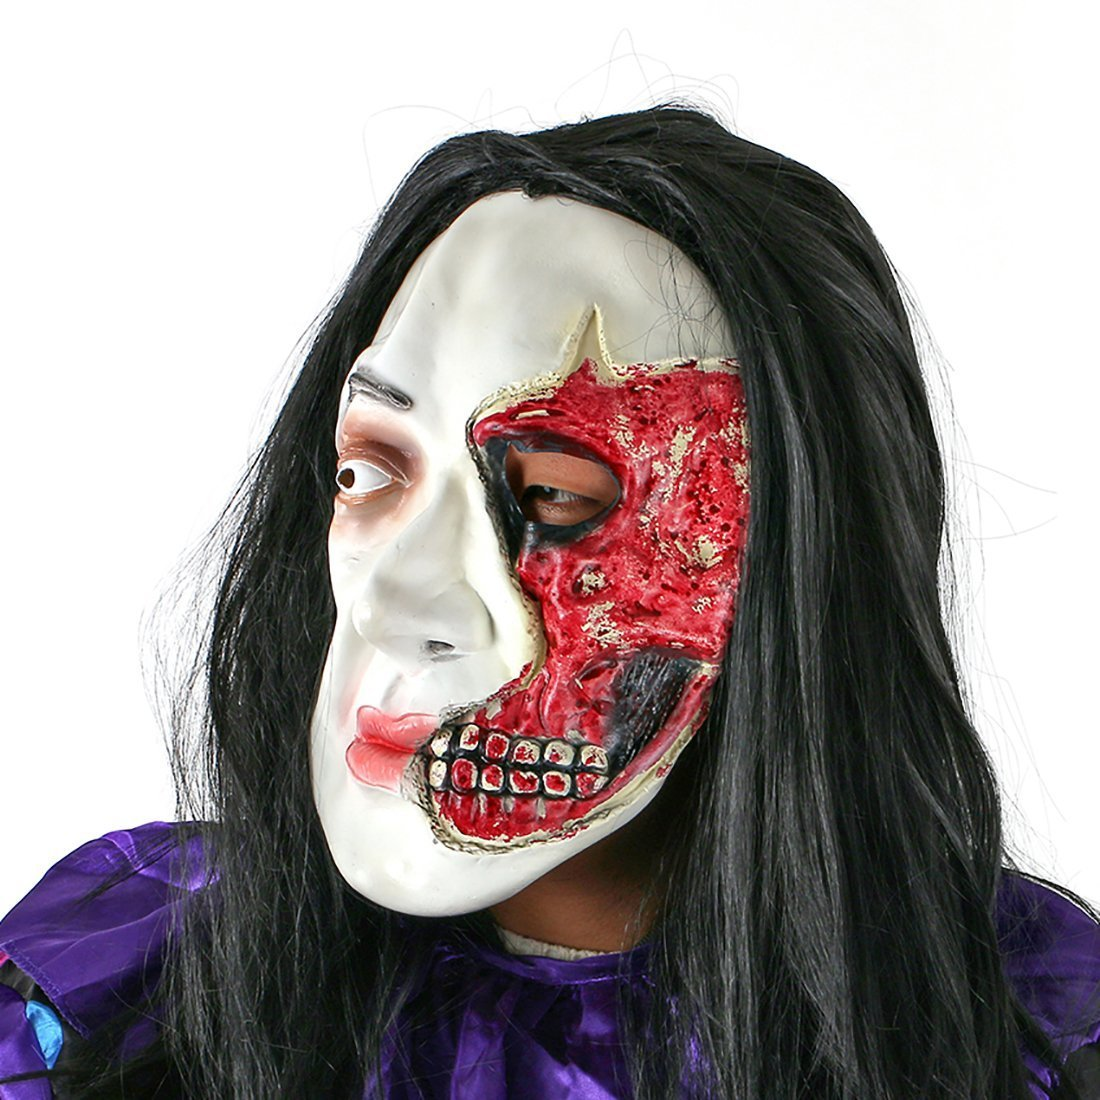 Amazon.com: YUFENG Scary Half Face Horror Mask for Halloween with ...